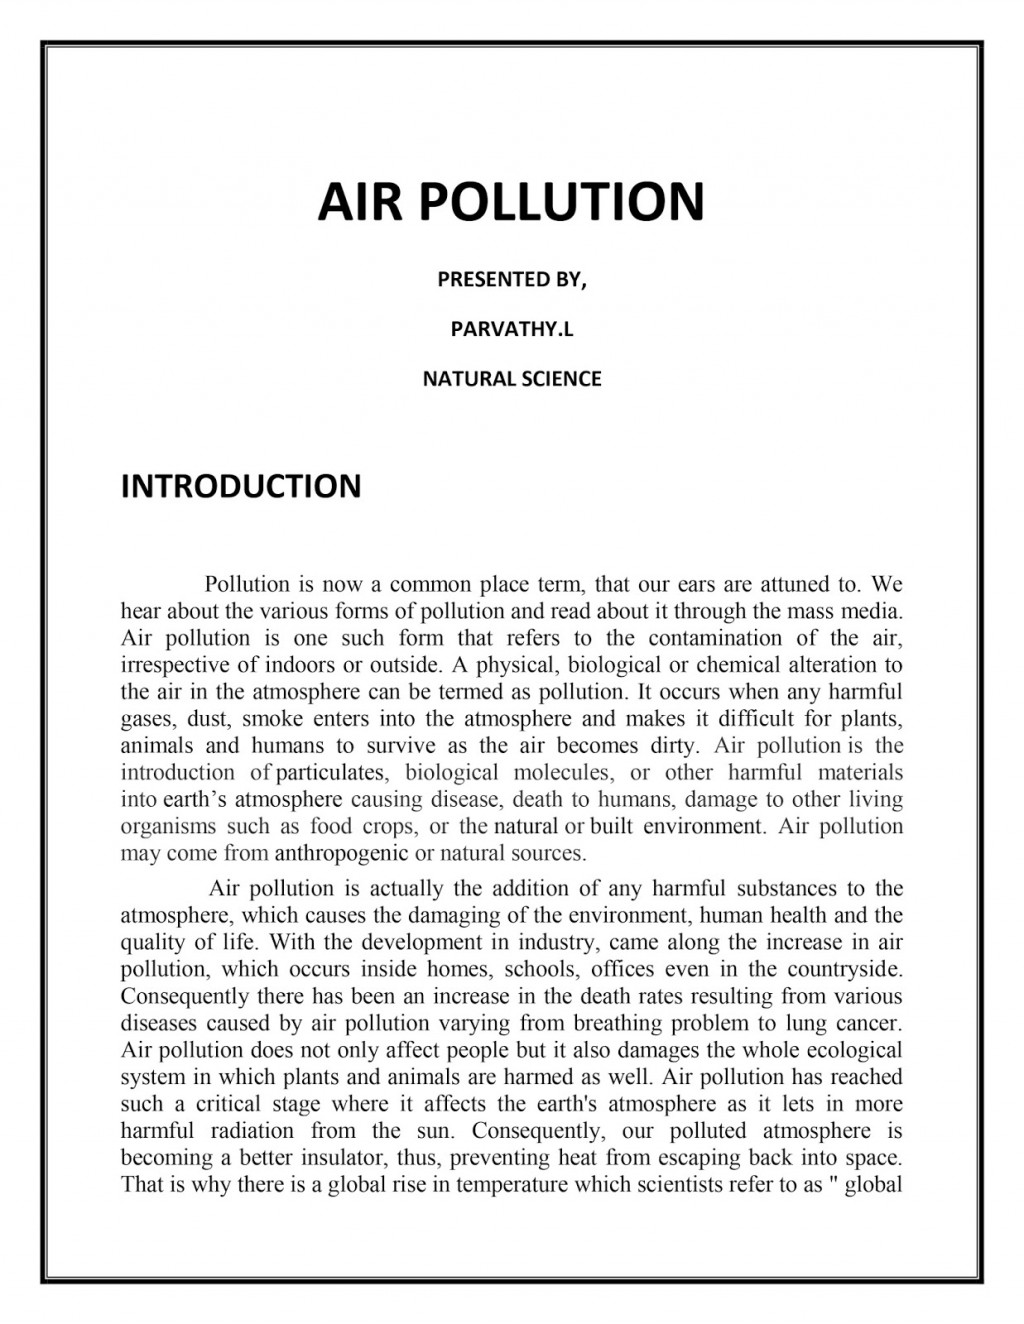 003 Essay Example Airpollutiononlineassignment Air Sensational Pollution Outline Thesis Statement Large